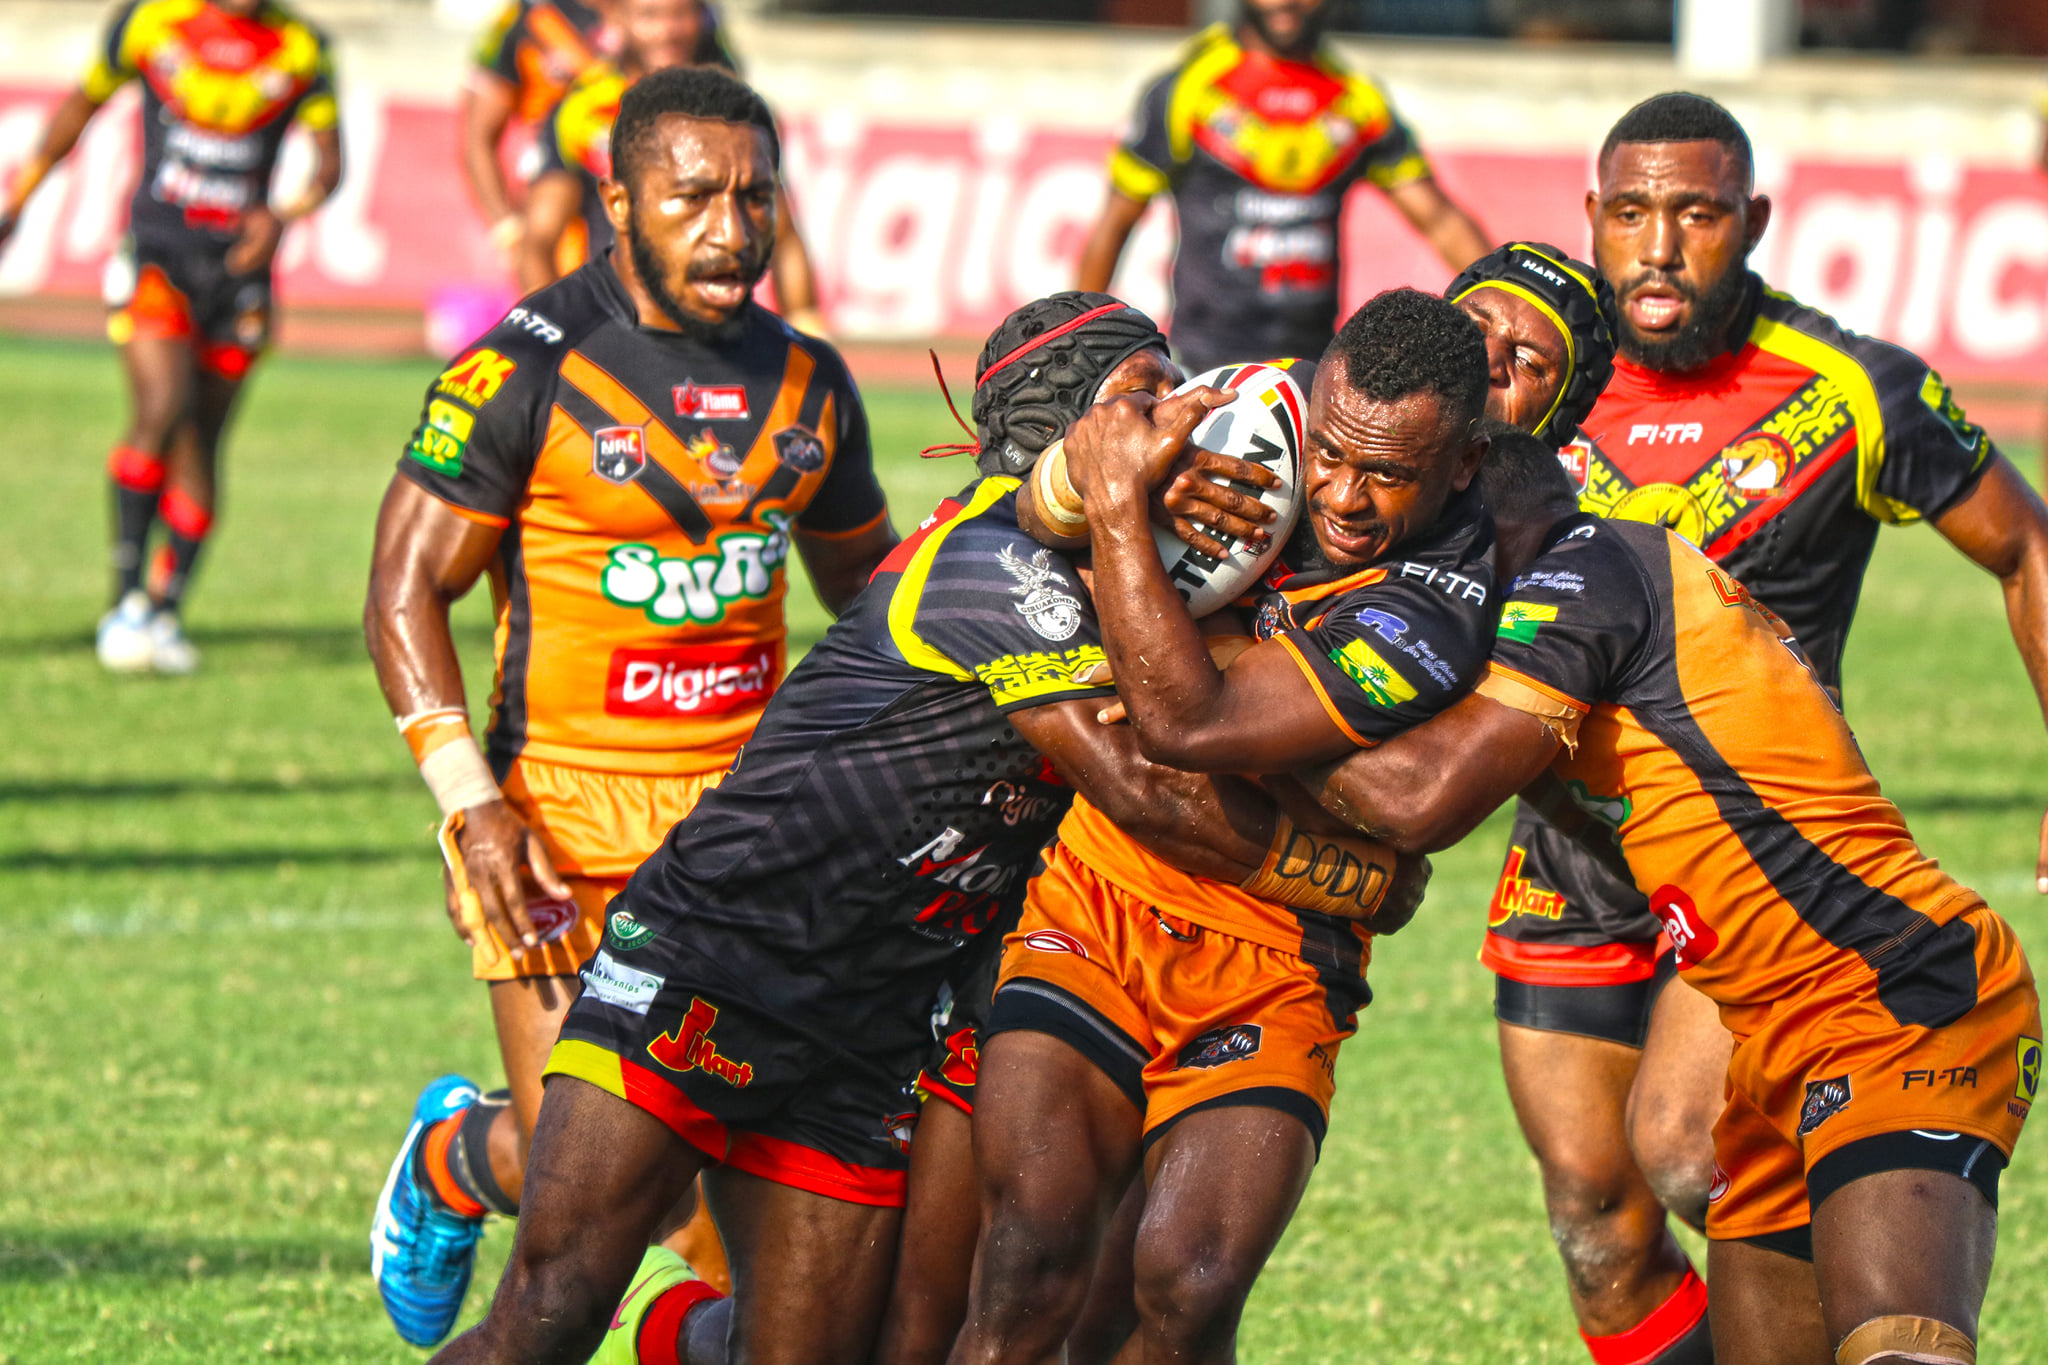 Major Pacific Competition Fixtures : September 25 – September 27